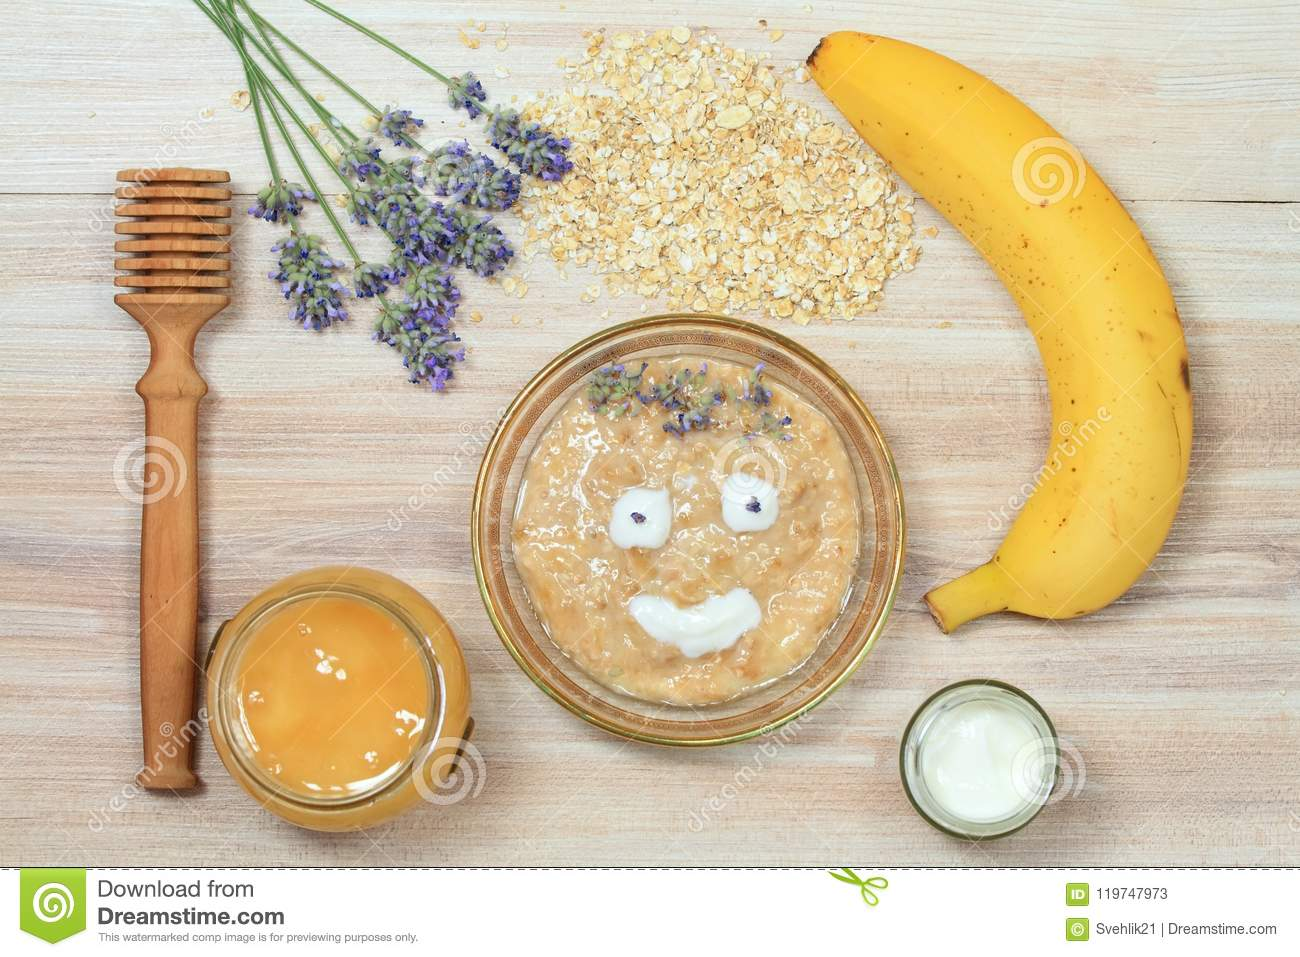 Ingredients for homemade facial mask decorated with lavender, flat lay